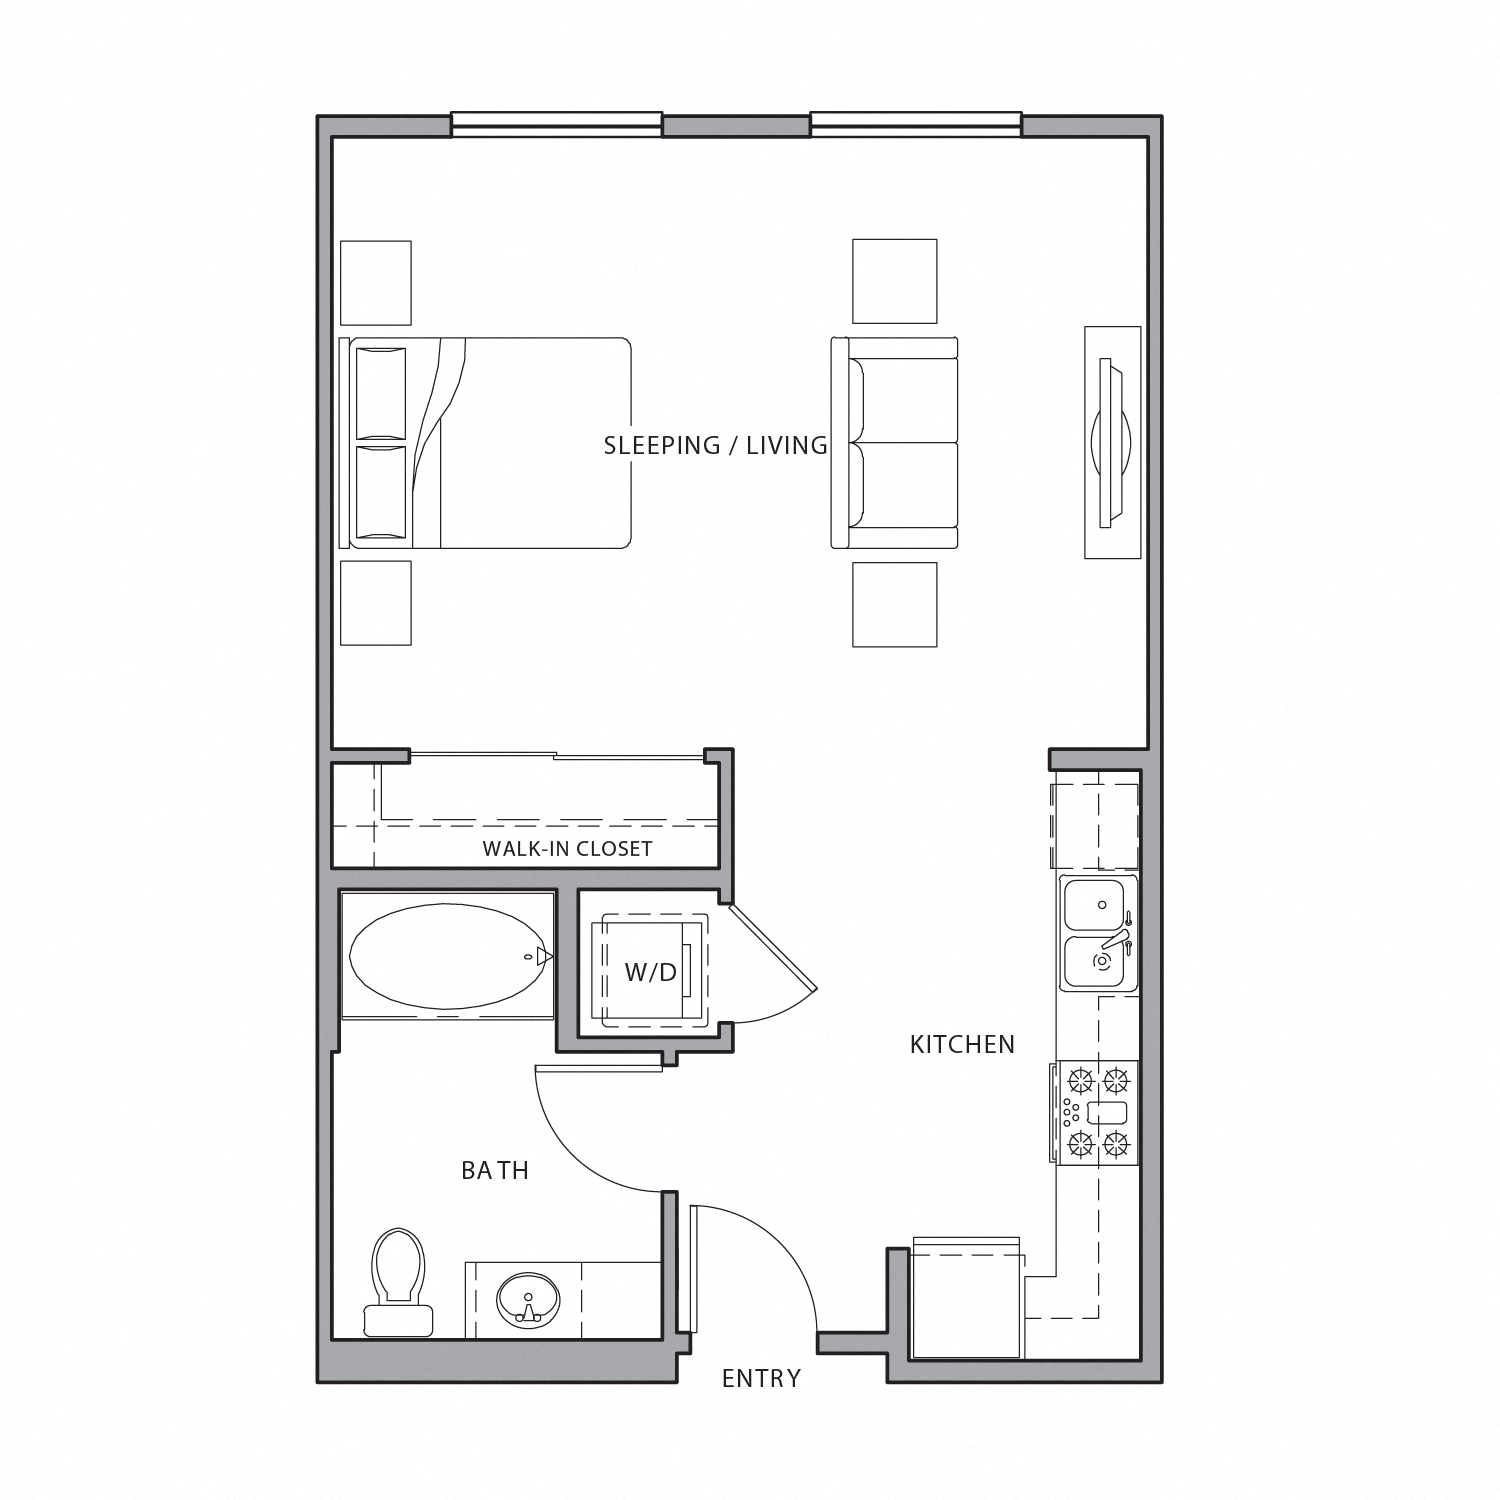 Floor plan diagram. Studio apartment an open kitchen and living area and one bathroom.